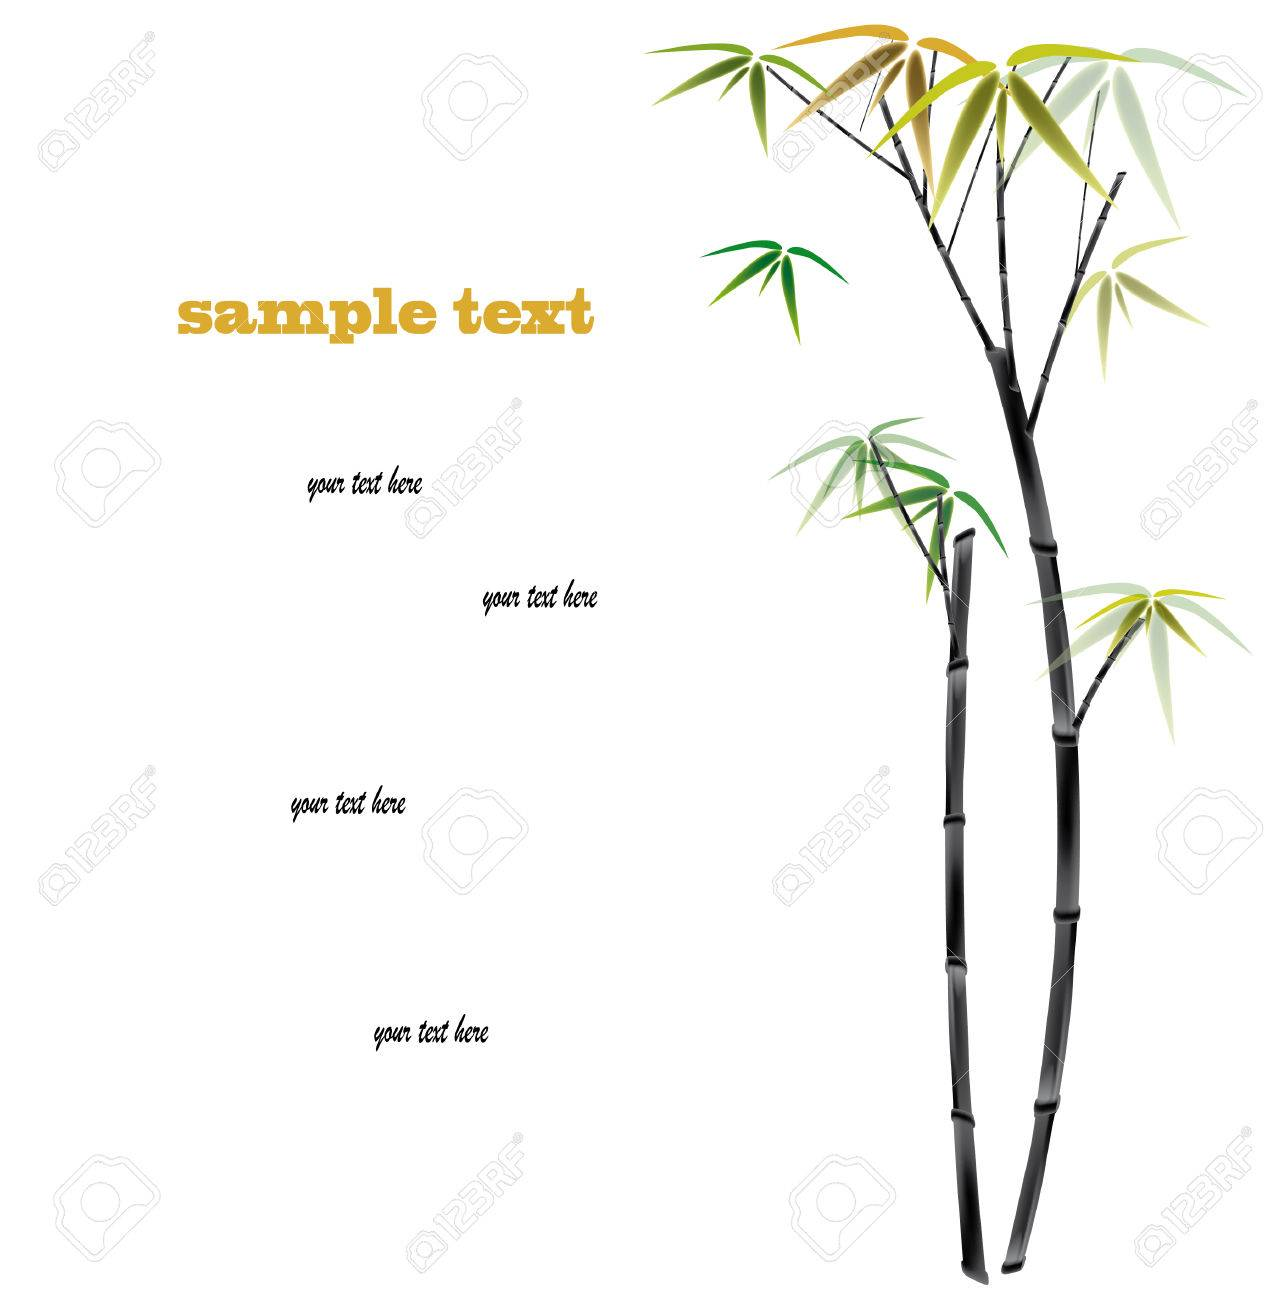 Bamboo background with copy space. vector illustration Stock Vector - 9079314